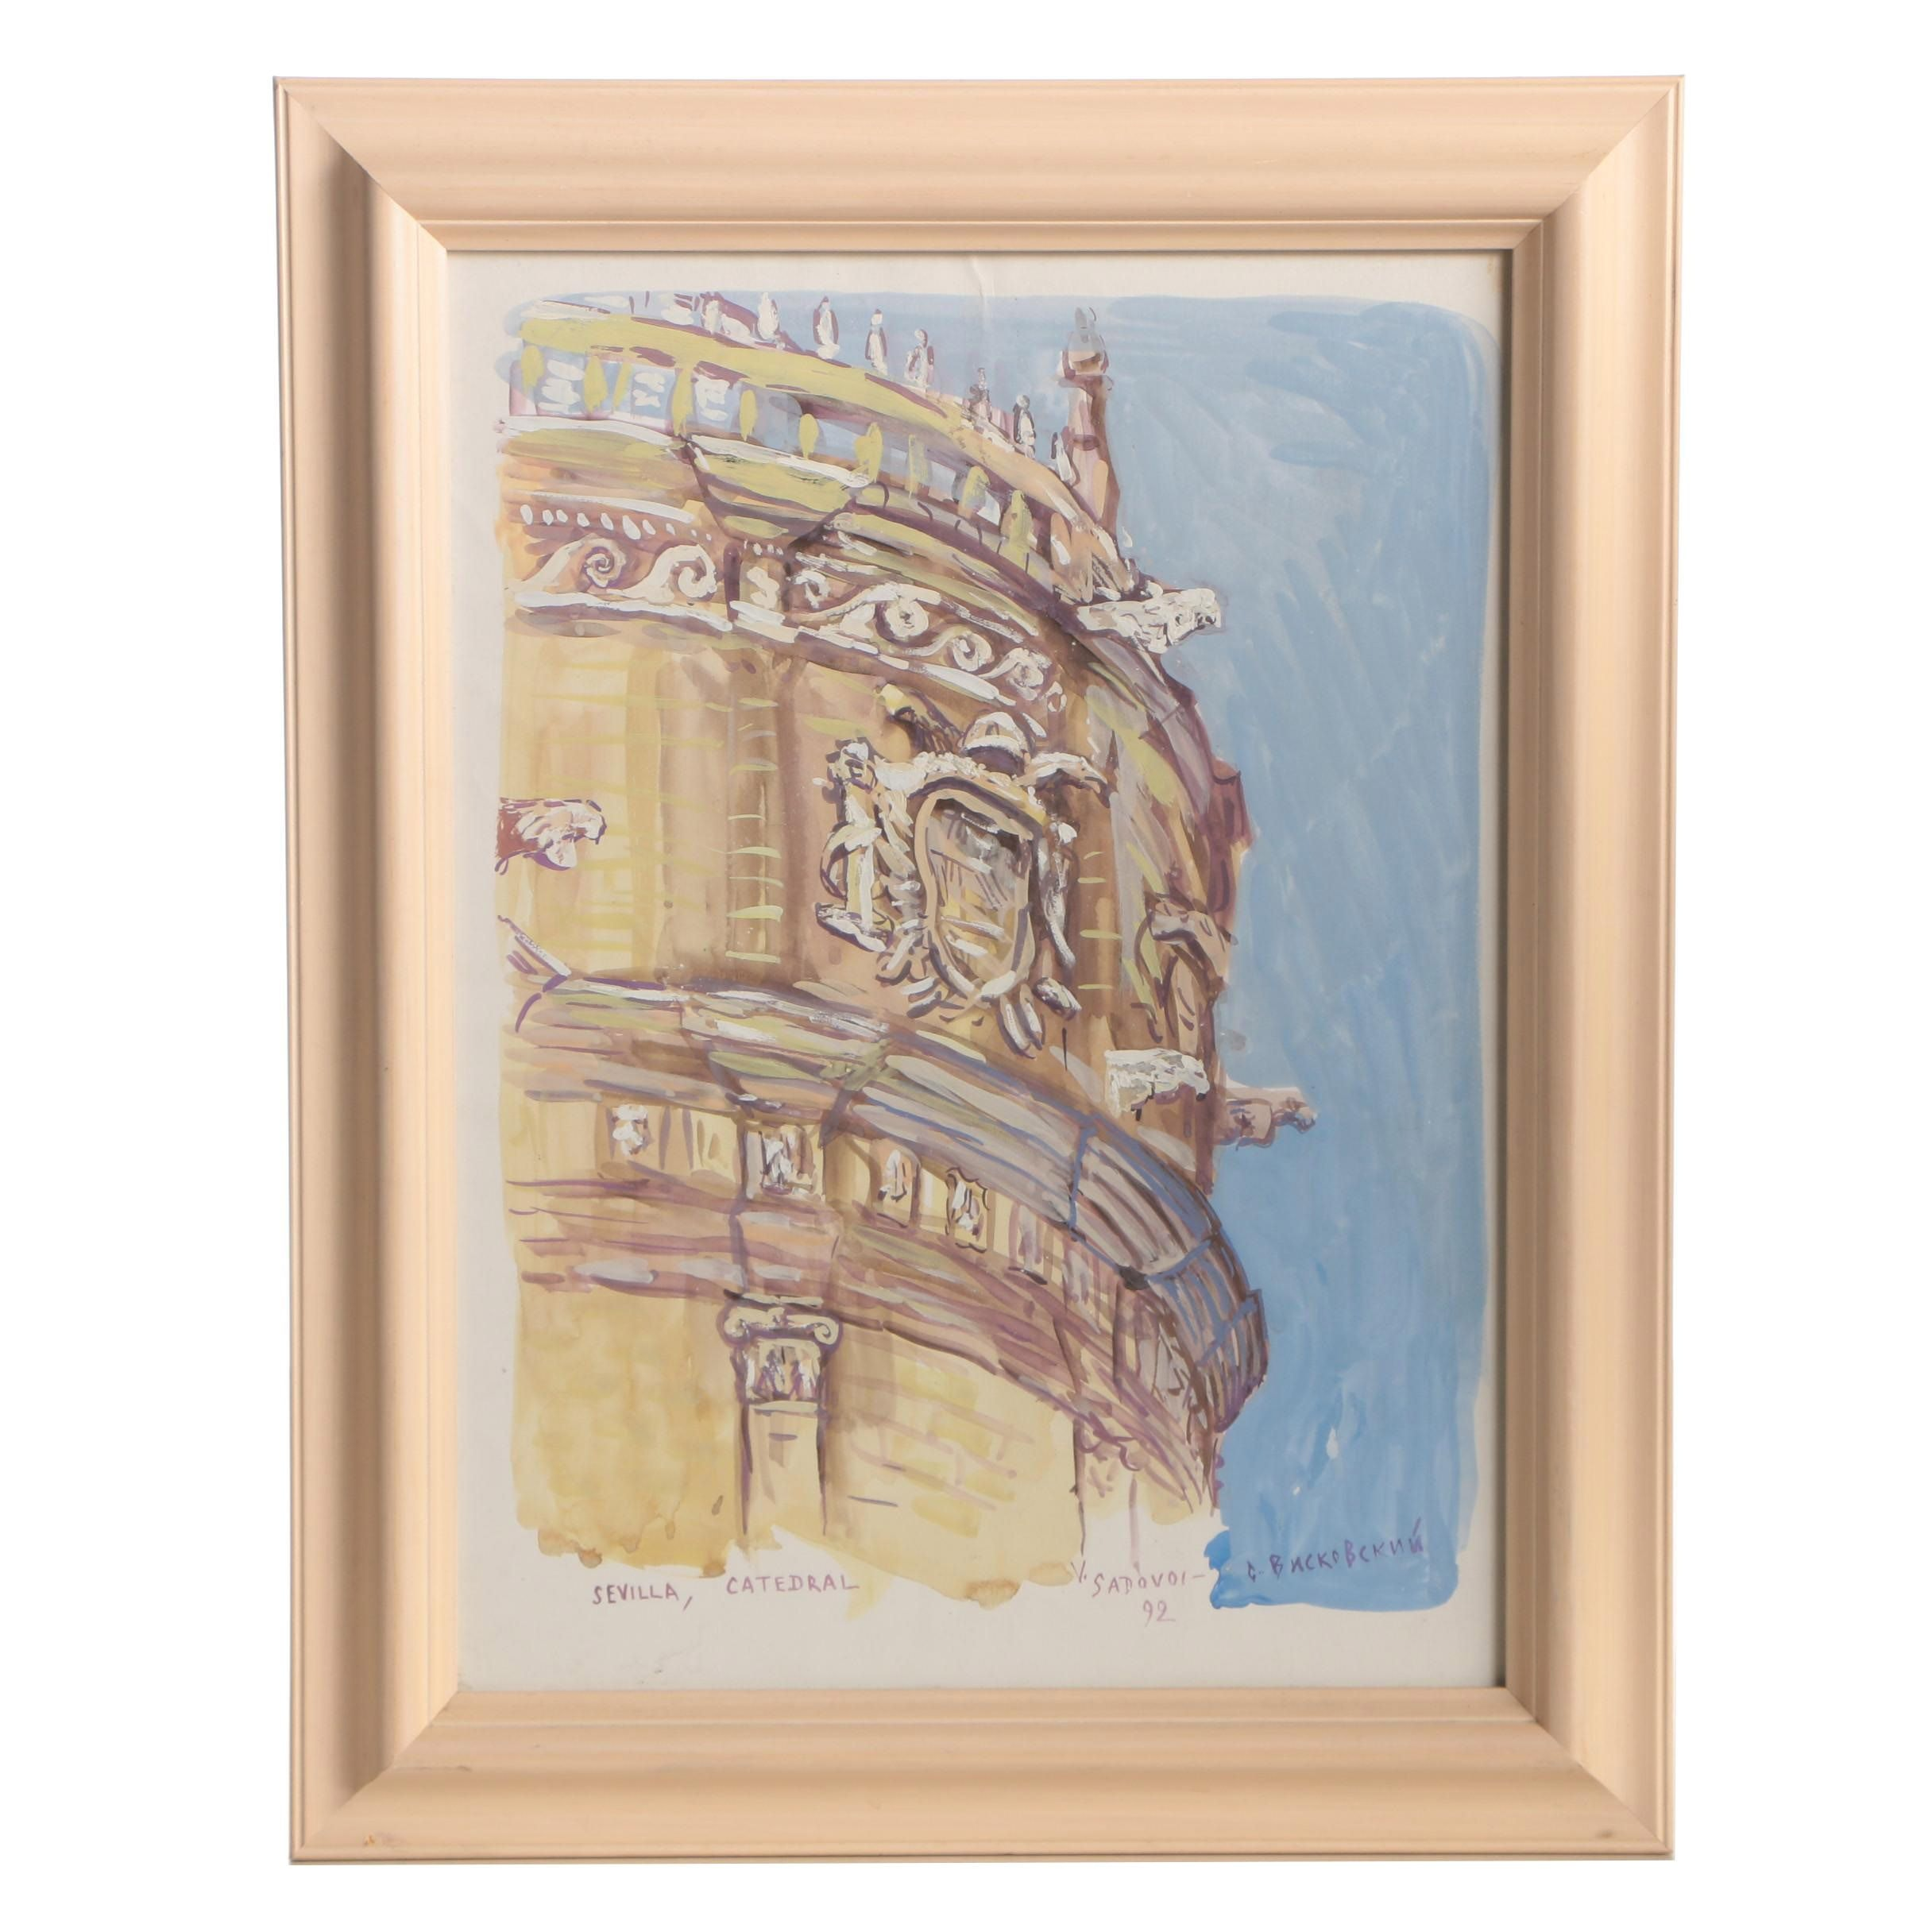 "V. Sadovoi Gouche and Watercolor Painting ""Sevilla, Catedral"""